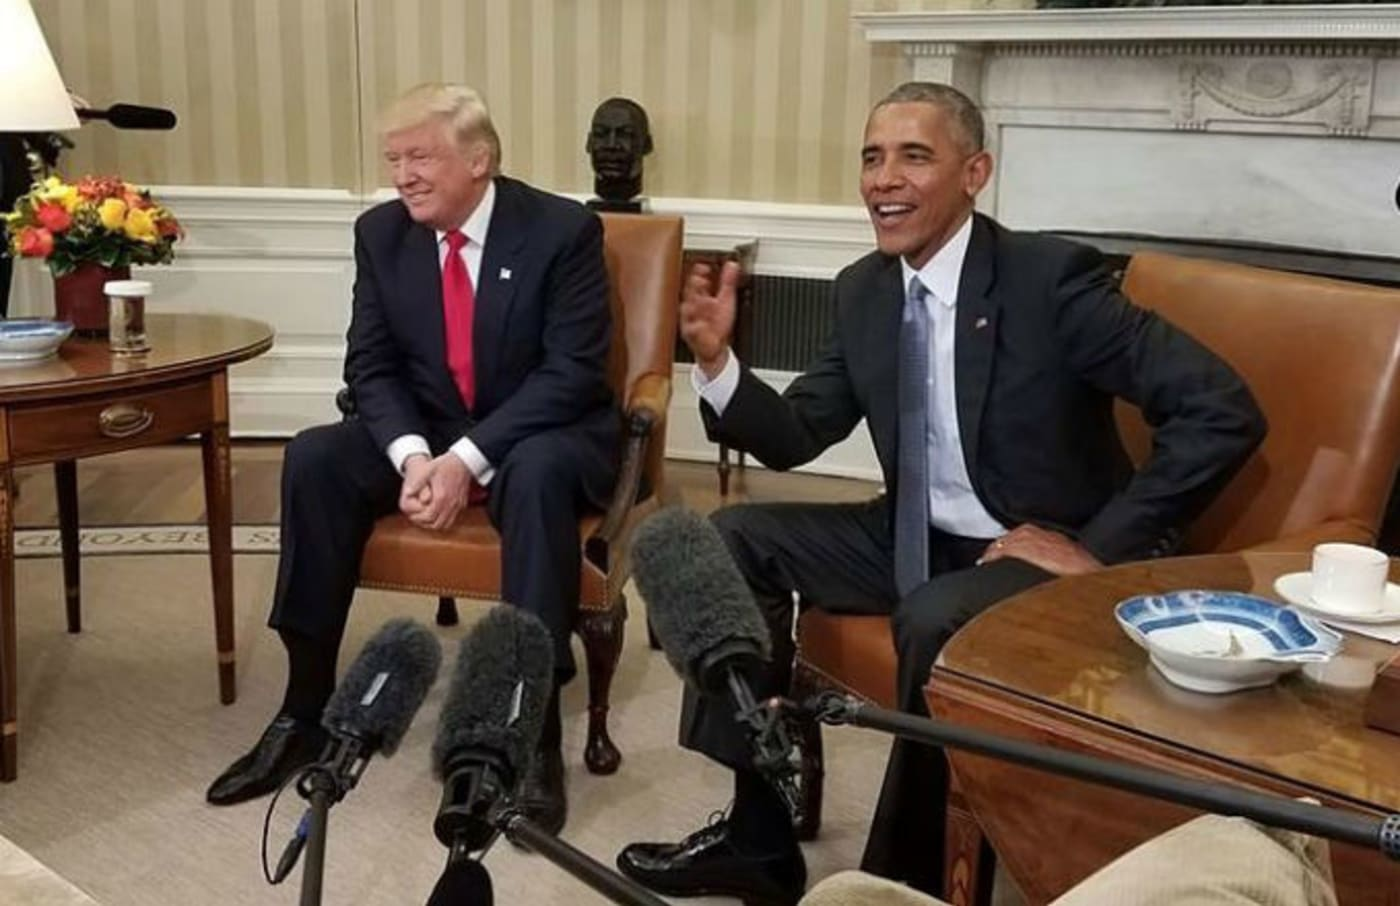 Barack Obama and Donald Trump at White House